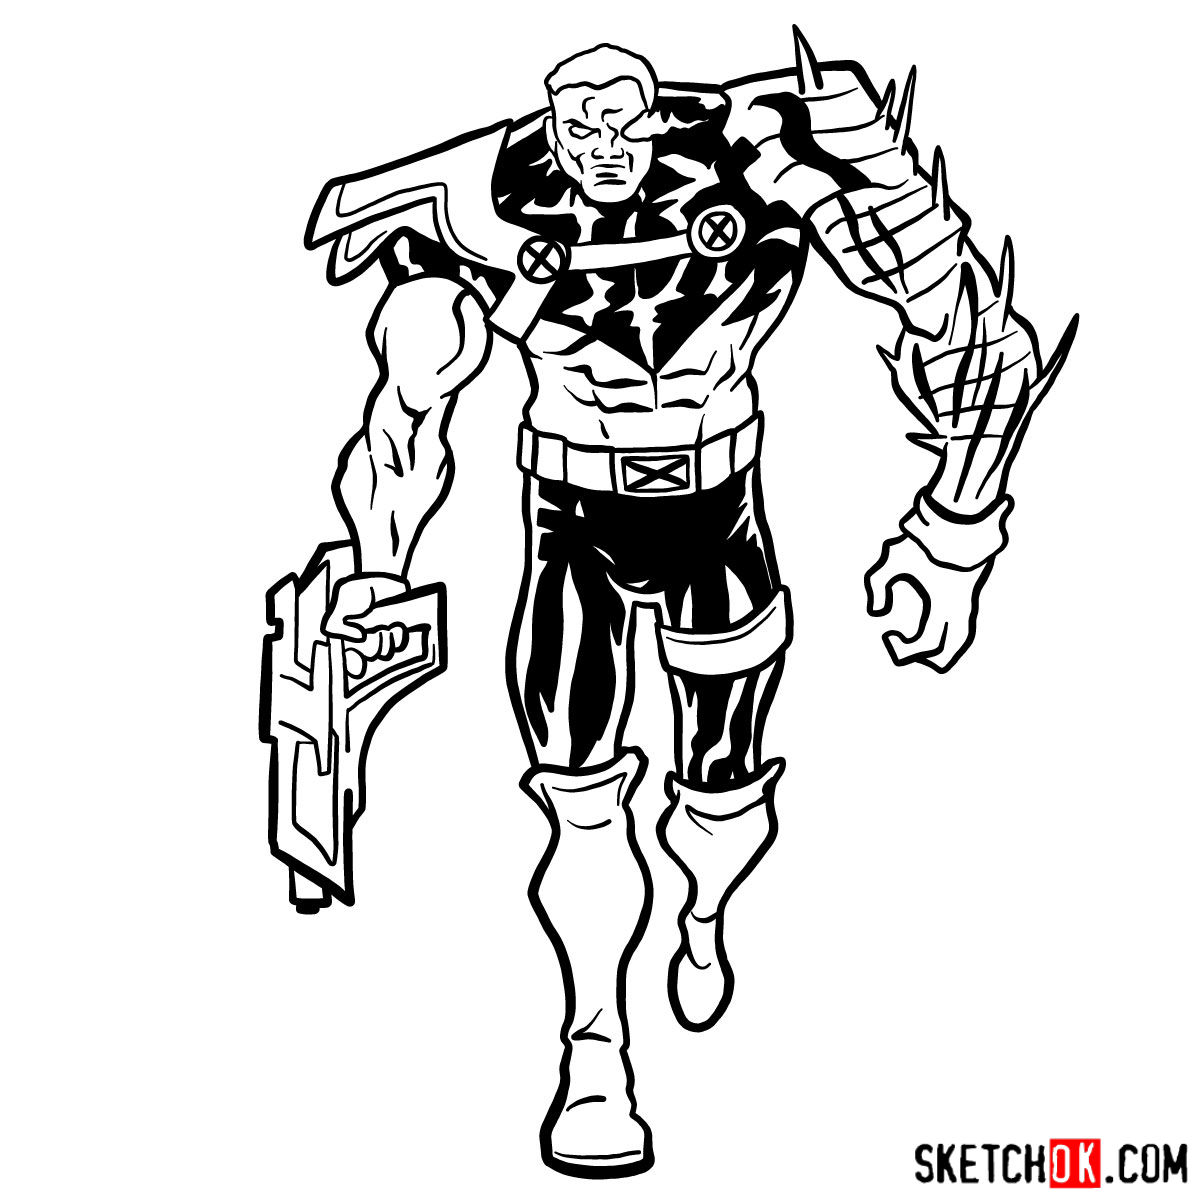 How to draw Cable from Marvel cartoons - step 14